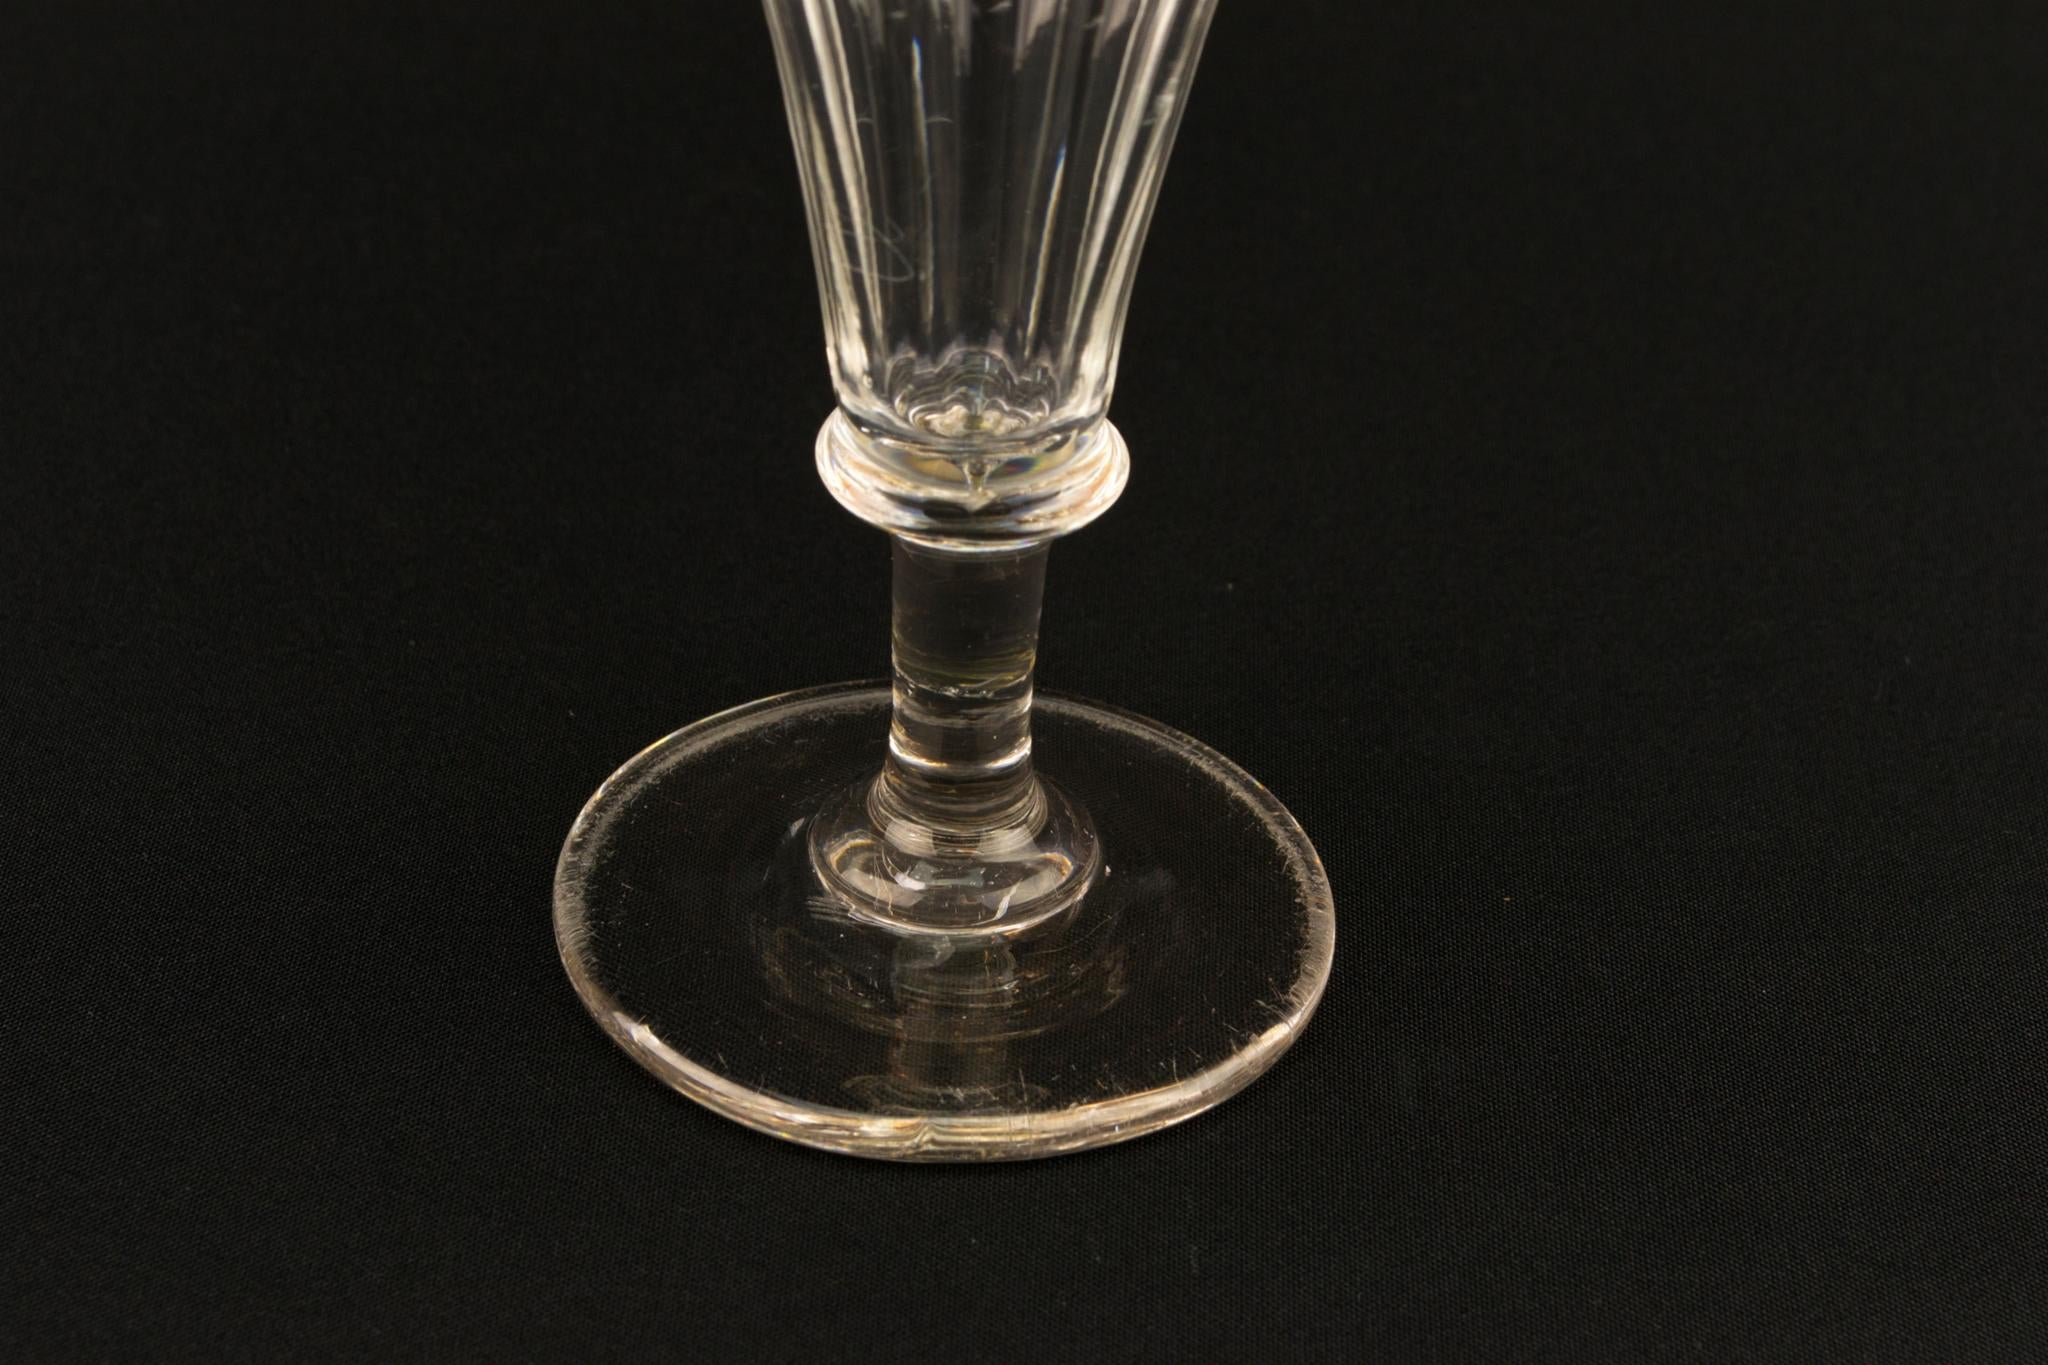 Cut Glass Medium Victorian Champagne Flute, English Mid 19th Century